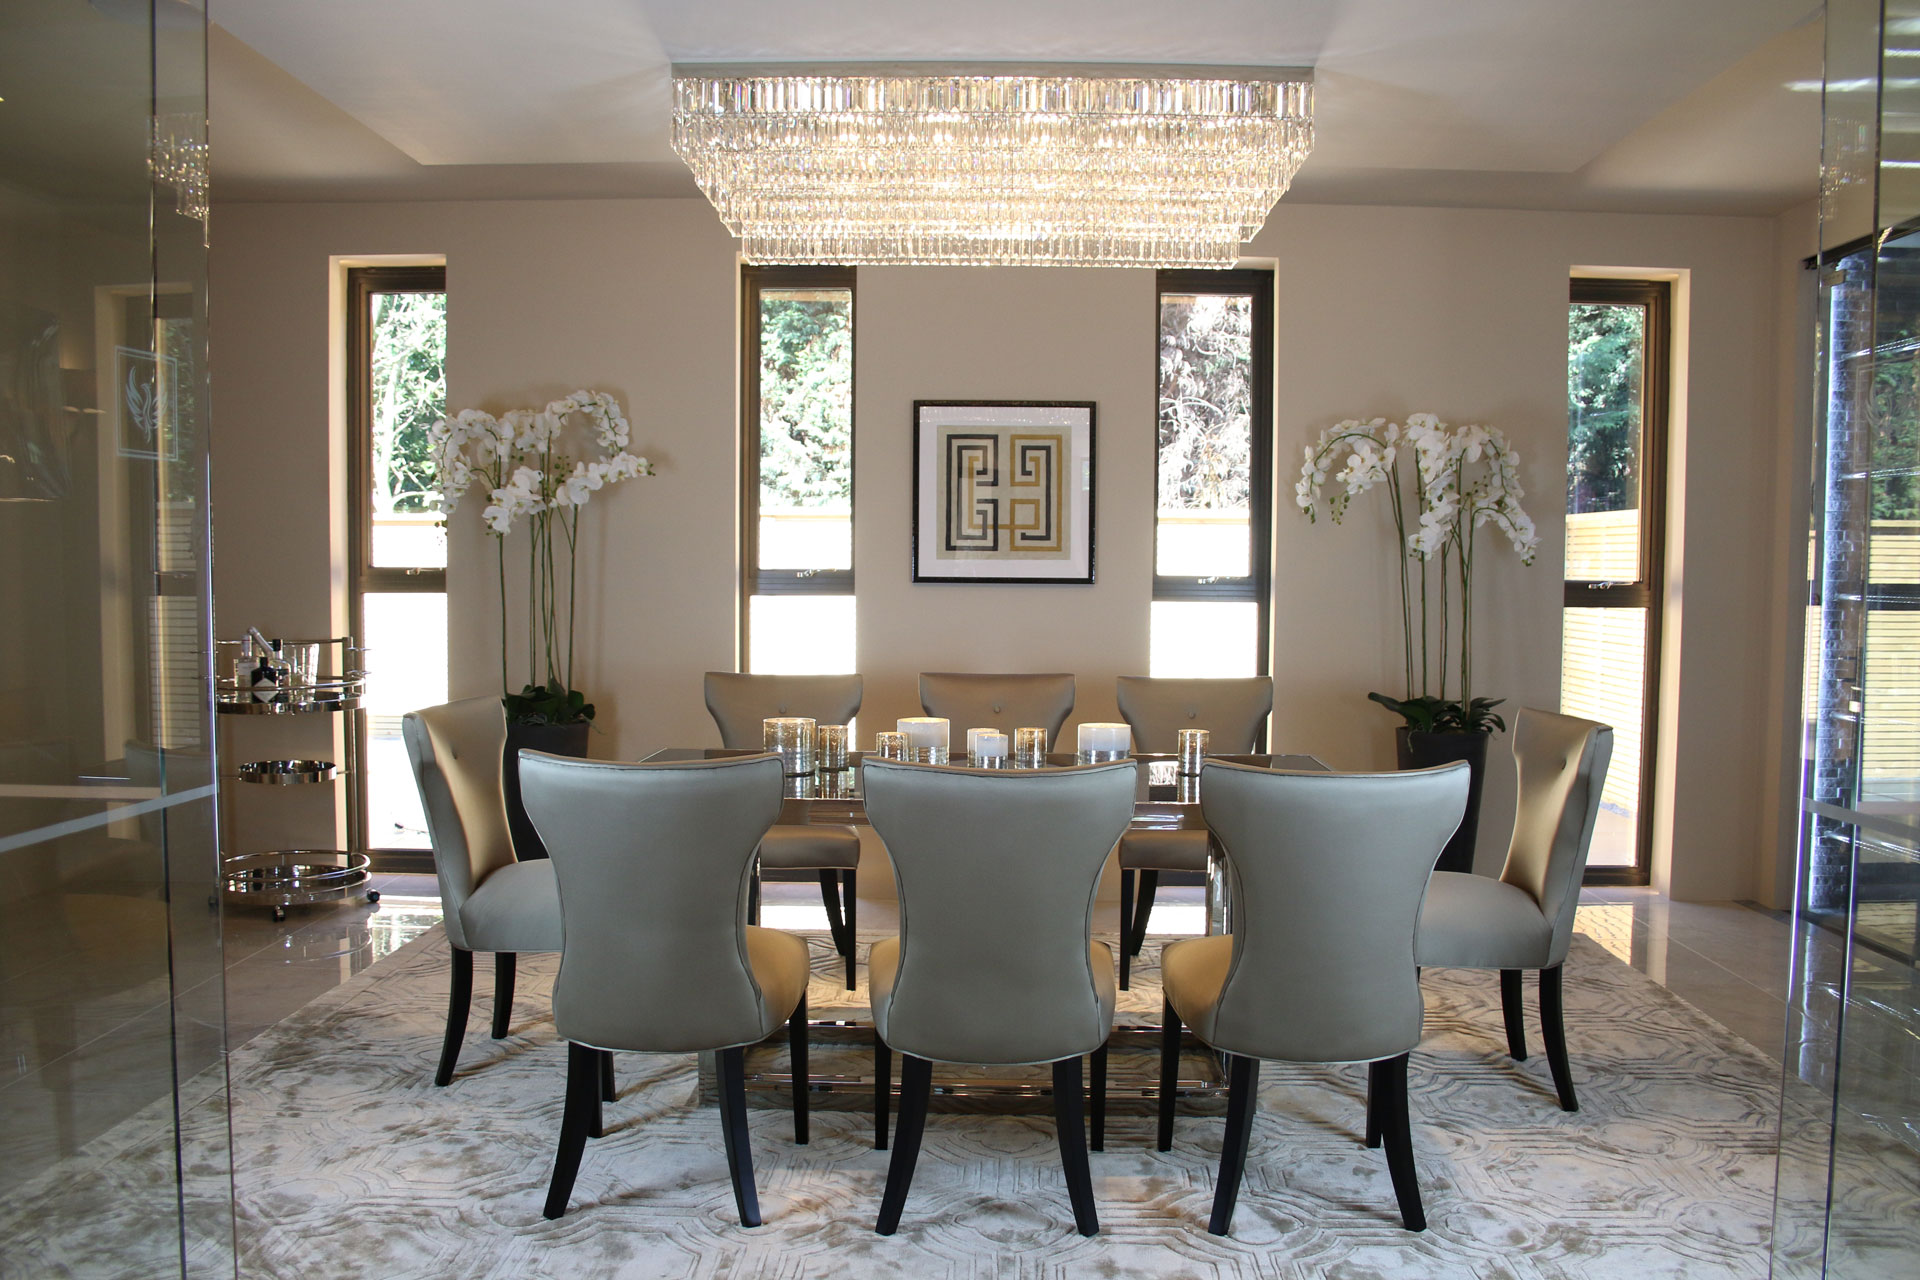 Dining Room At Fairmont By Guy Phoenix